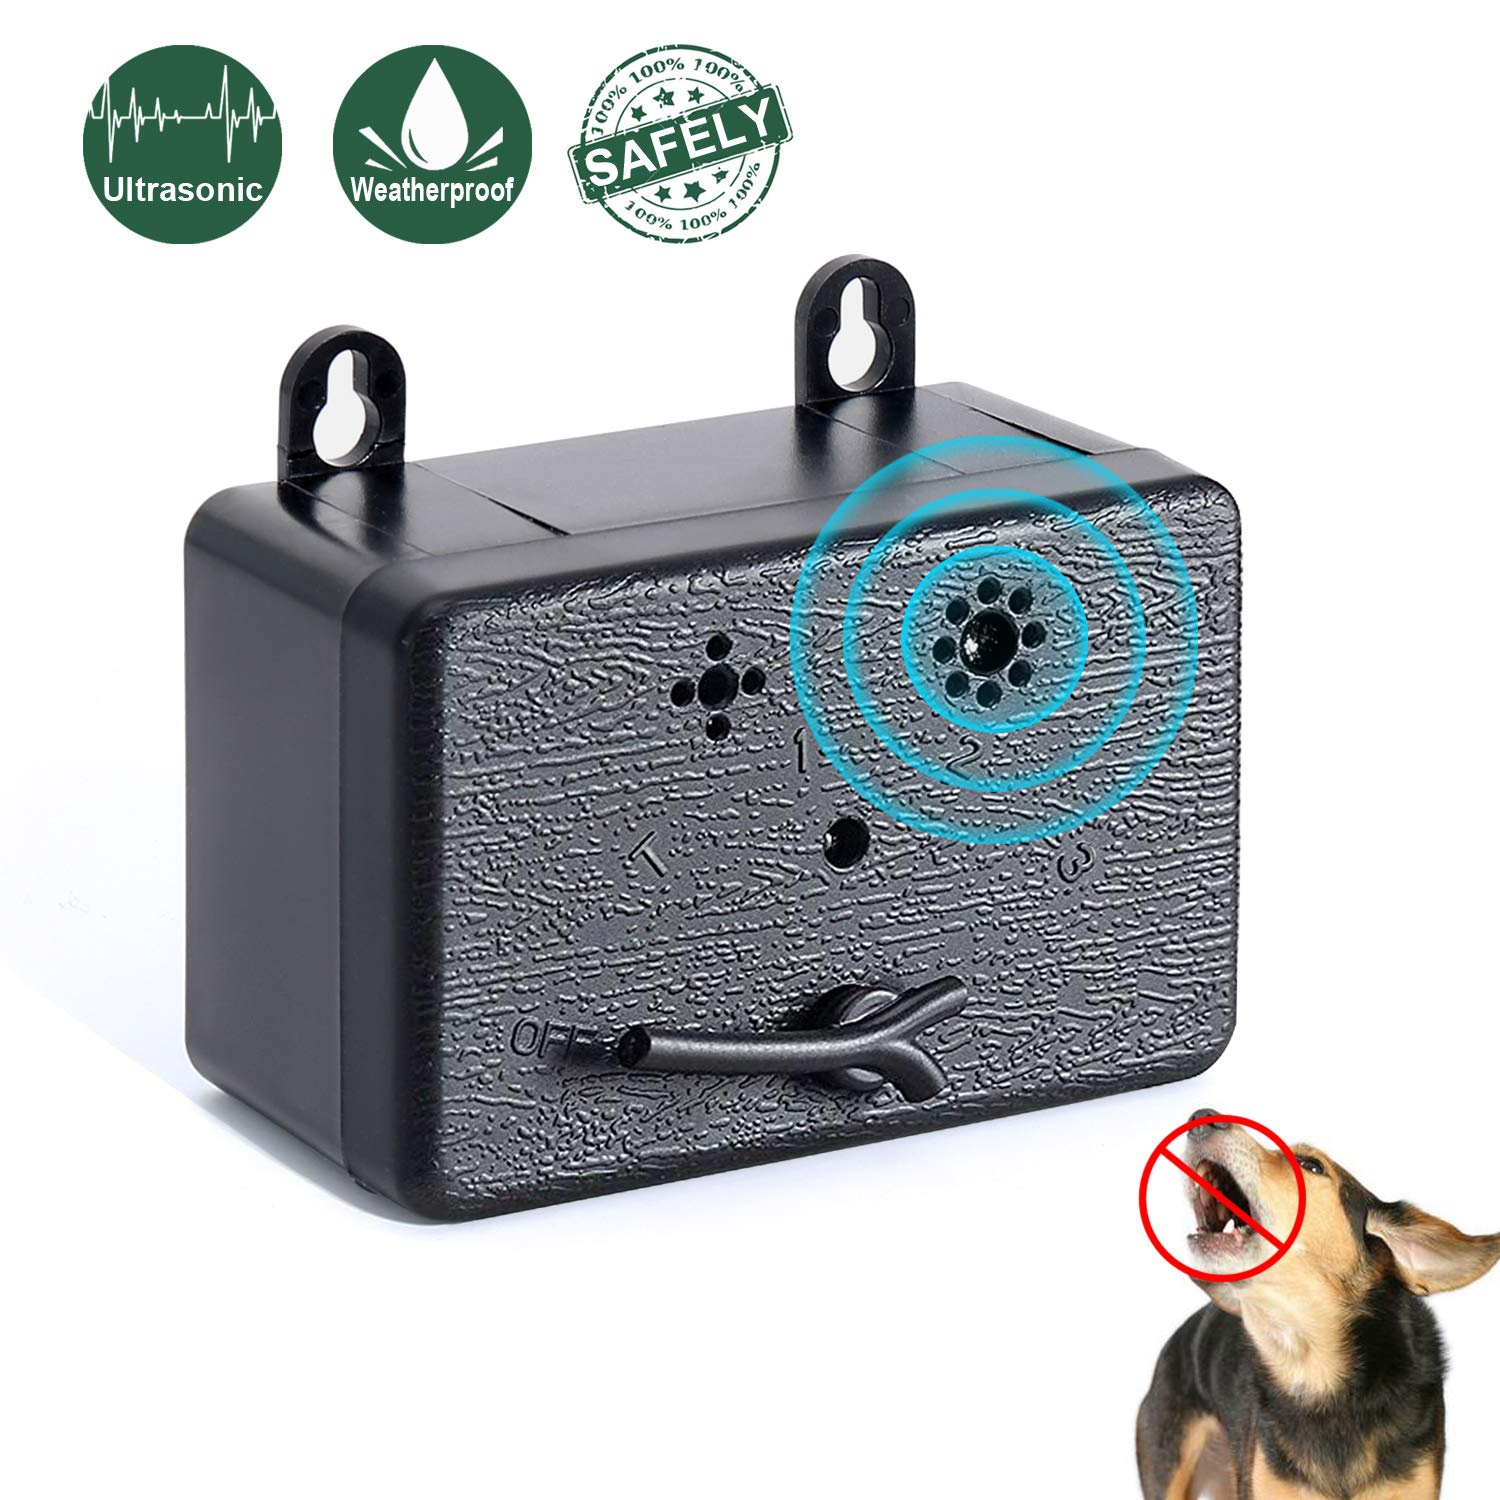 PetUlove Ultrasonic Dog Anti Barking Device,Bark Control Device,Stop Barking,Outdoor Sonic Bark Deterrents No Bark Silencer by PetUlove